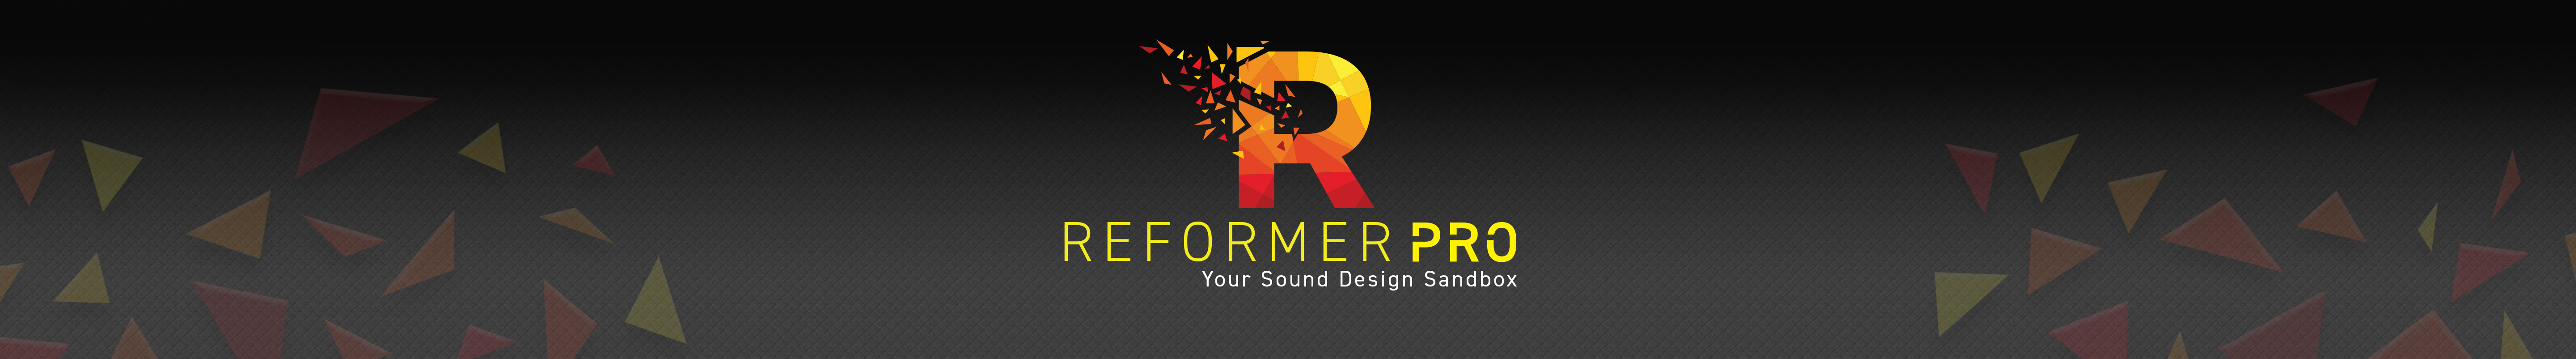 reformer-pro-product-page-banner